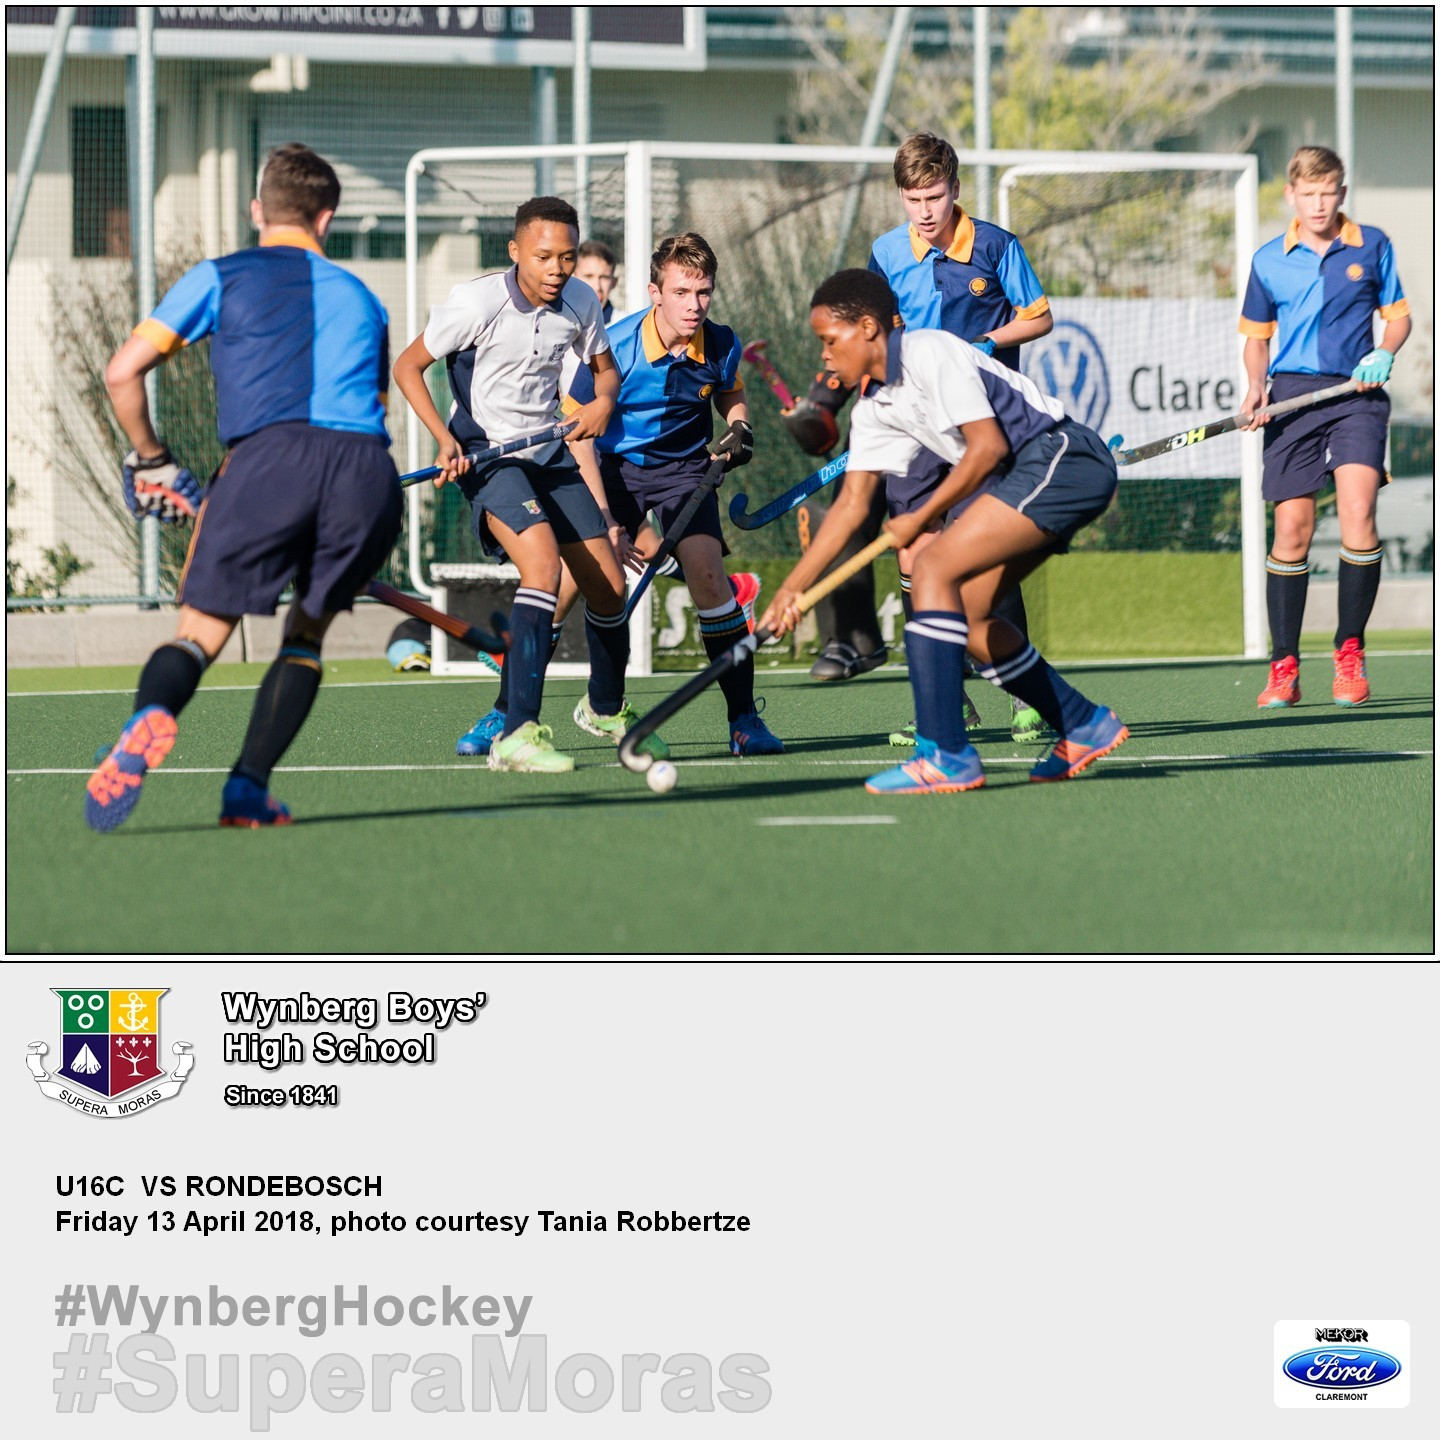 U16C vs Rondebosch U15A, Friday 13 April 2018